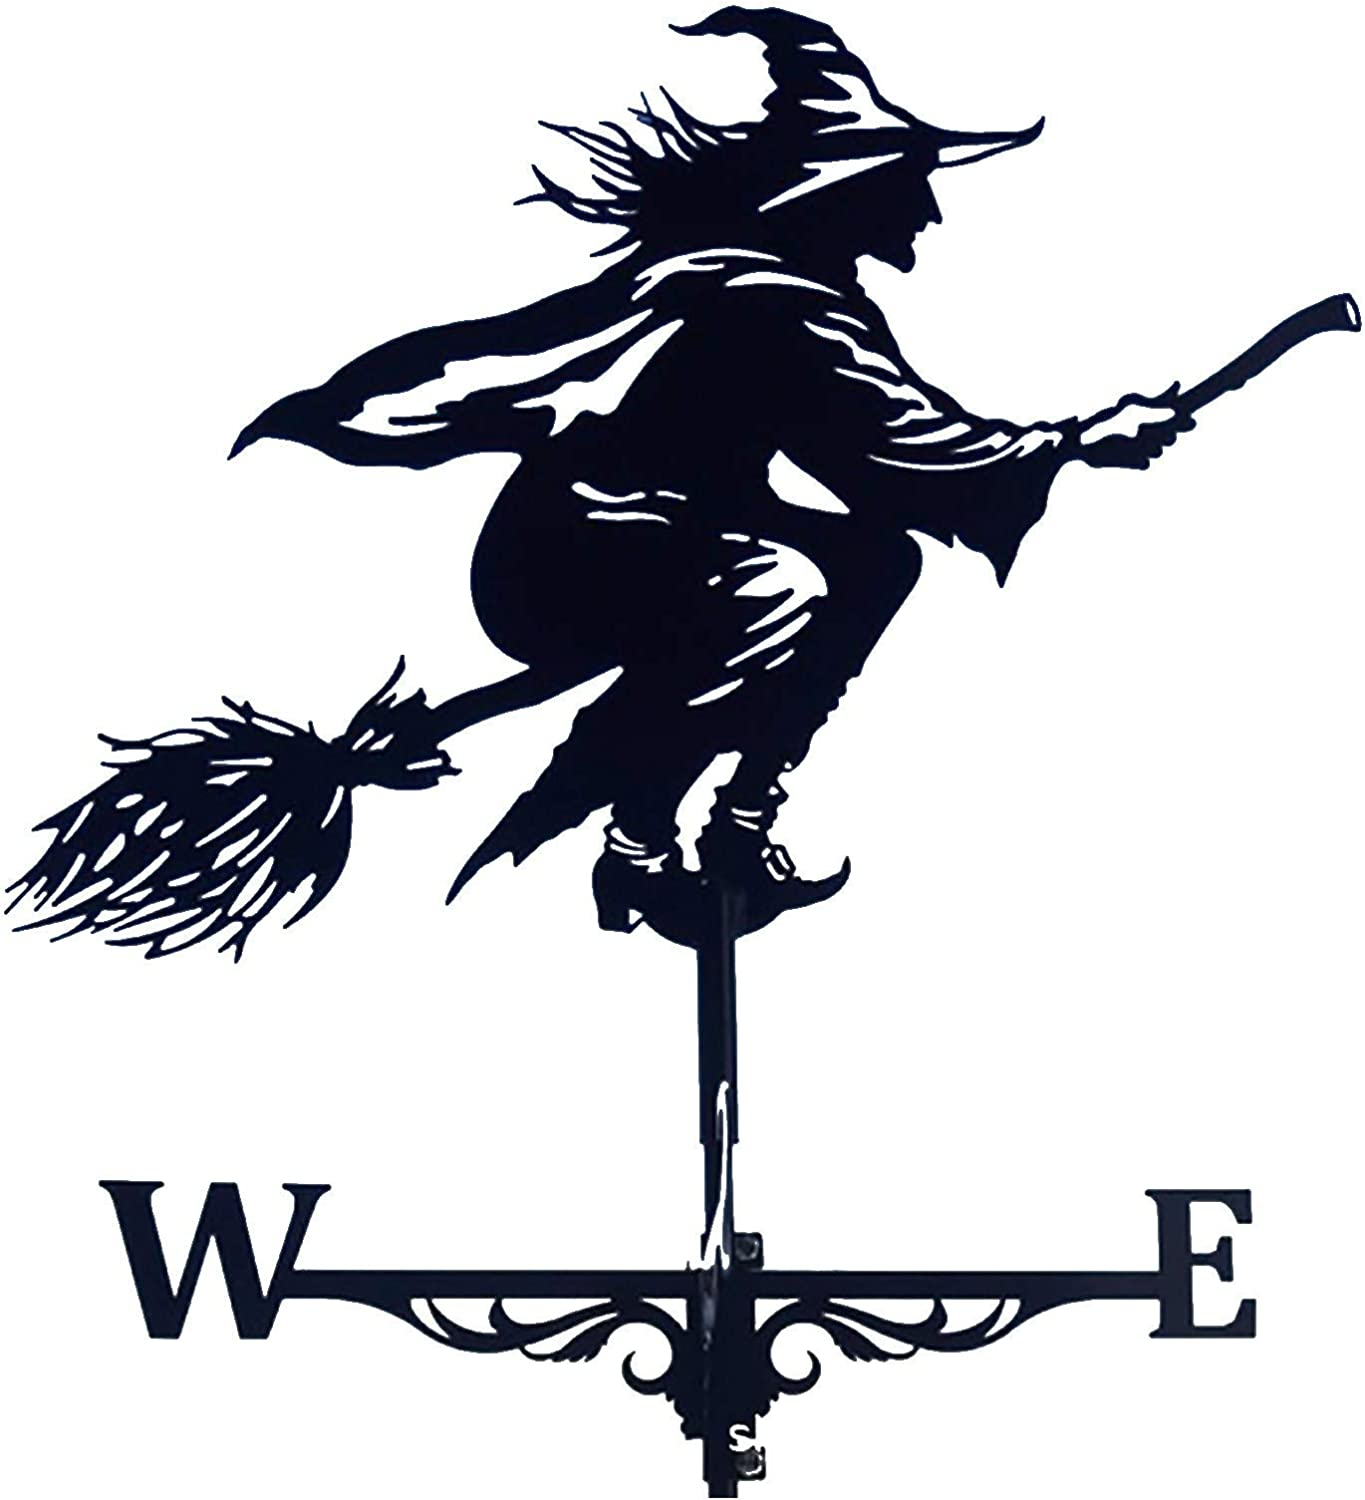 Metal Weathervane,Witch Weather Vanes Ornament for Roofs, Witch Shape Weathercock, Windblown Flying Wicked Witch Wind Direction Indicator Metal Decorations for Outdoor Farm Yard Garden (A)